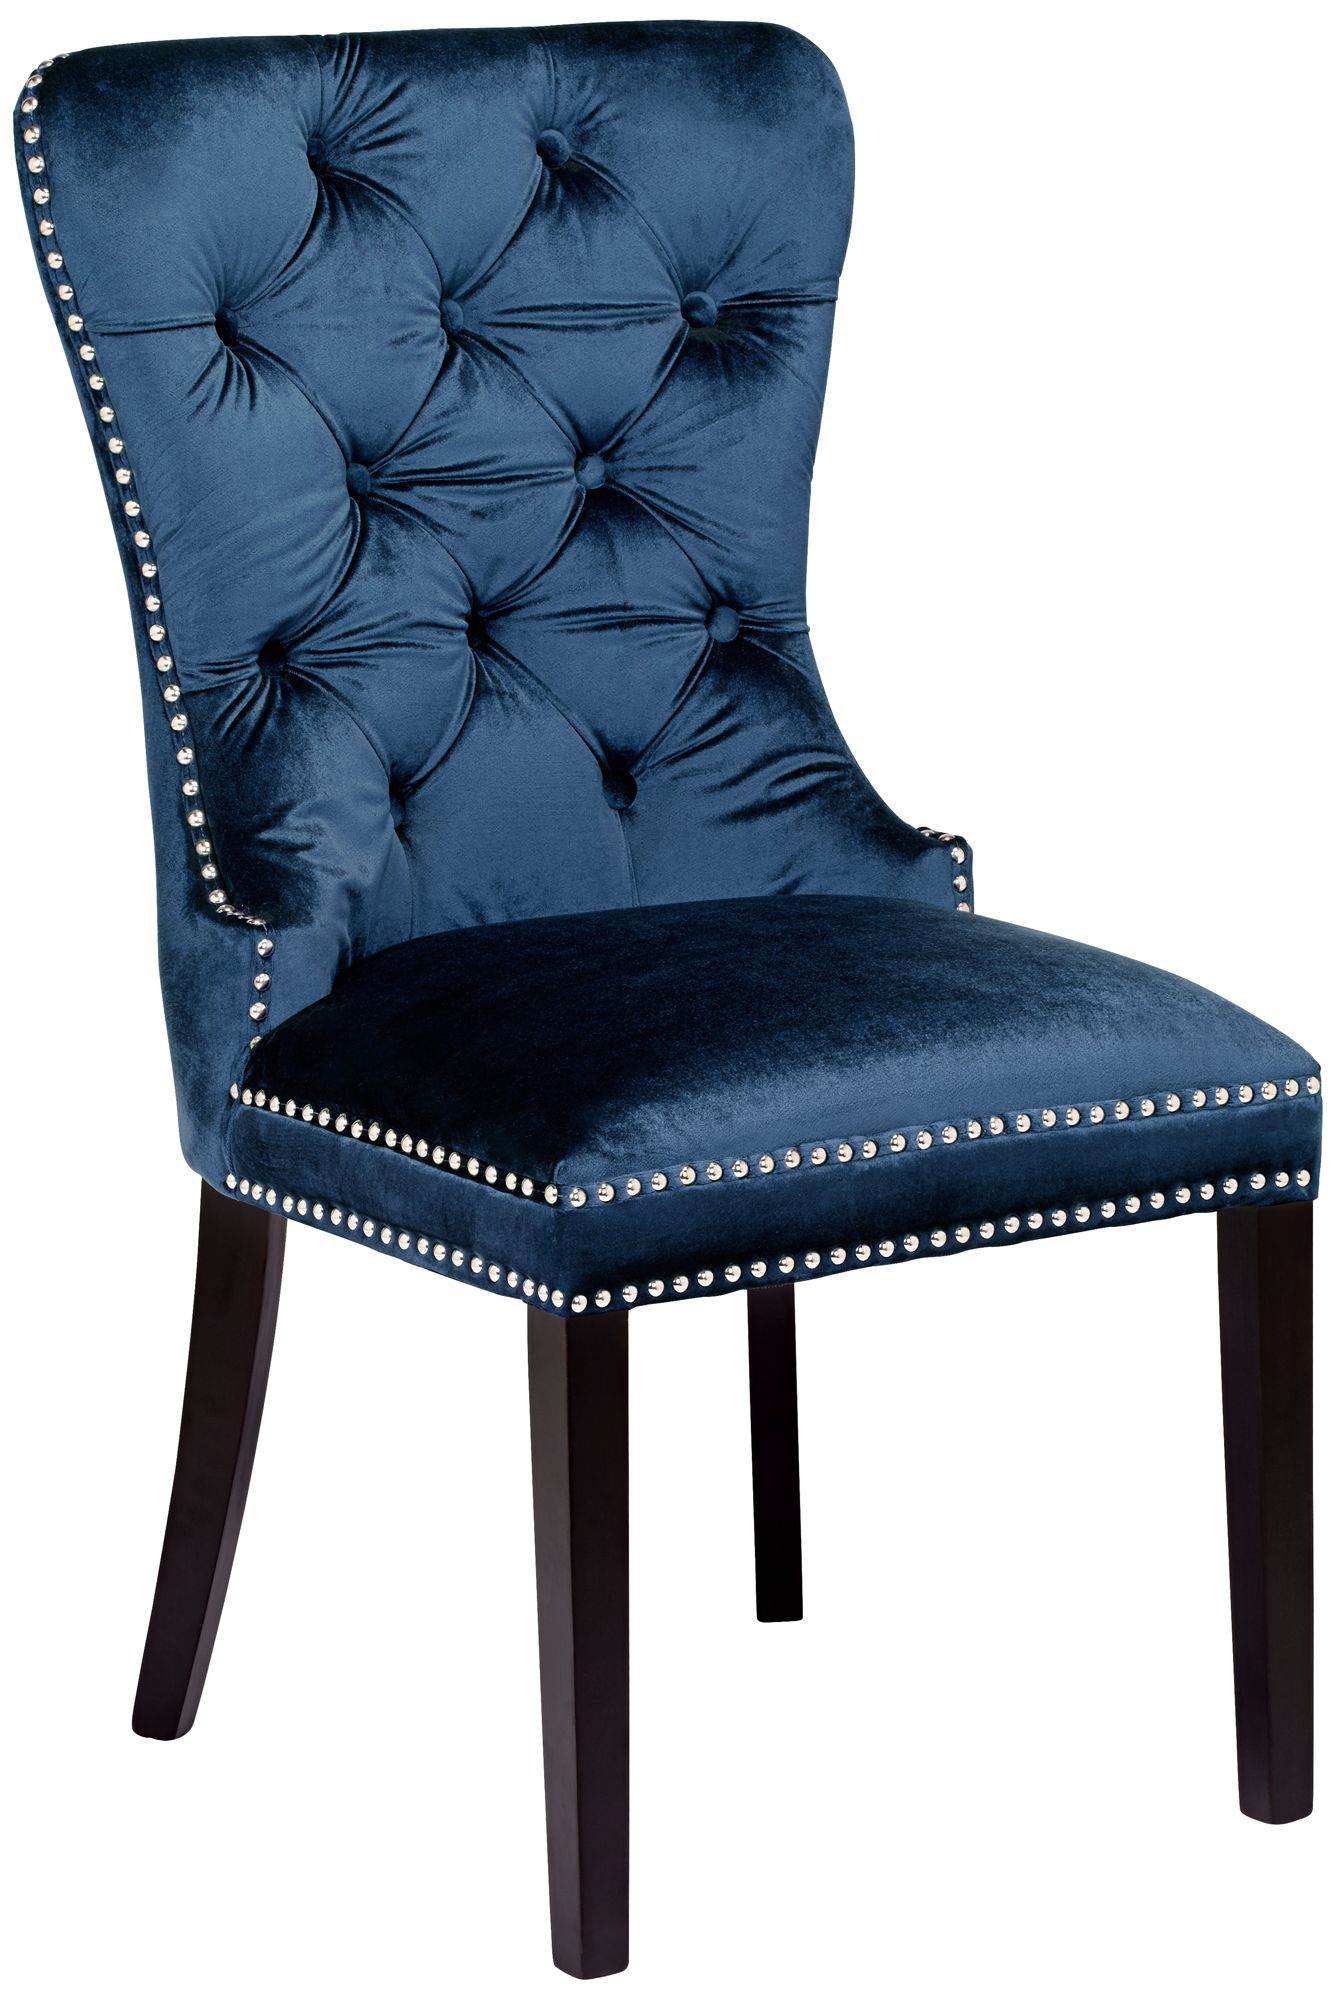 Euphoria Tufted Blue Velvet Dining Chair 1p330 Lamps Plus